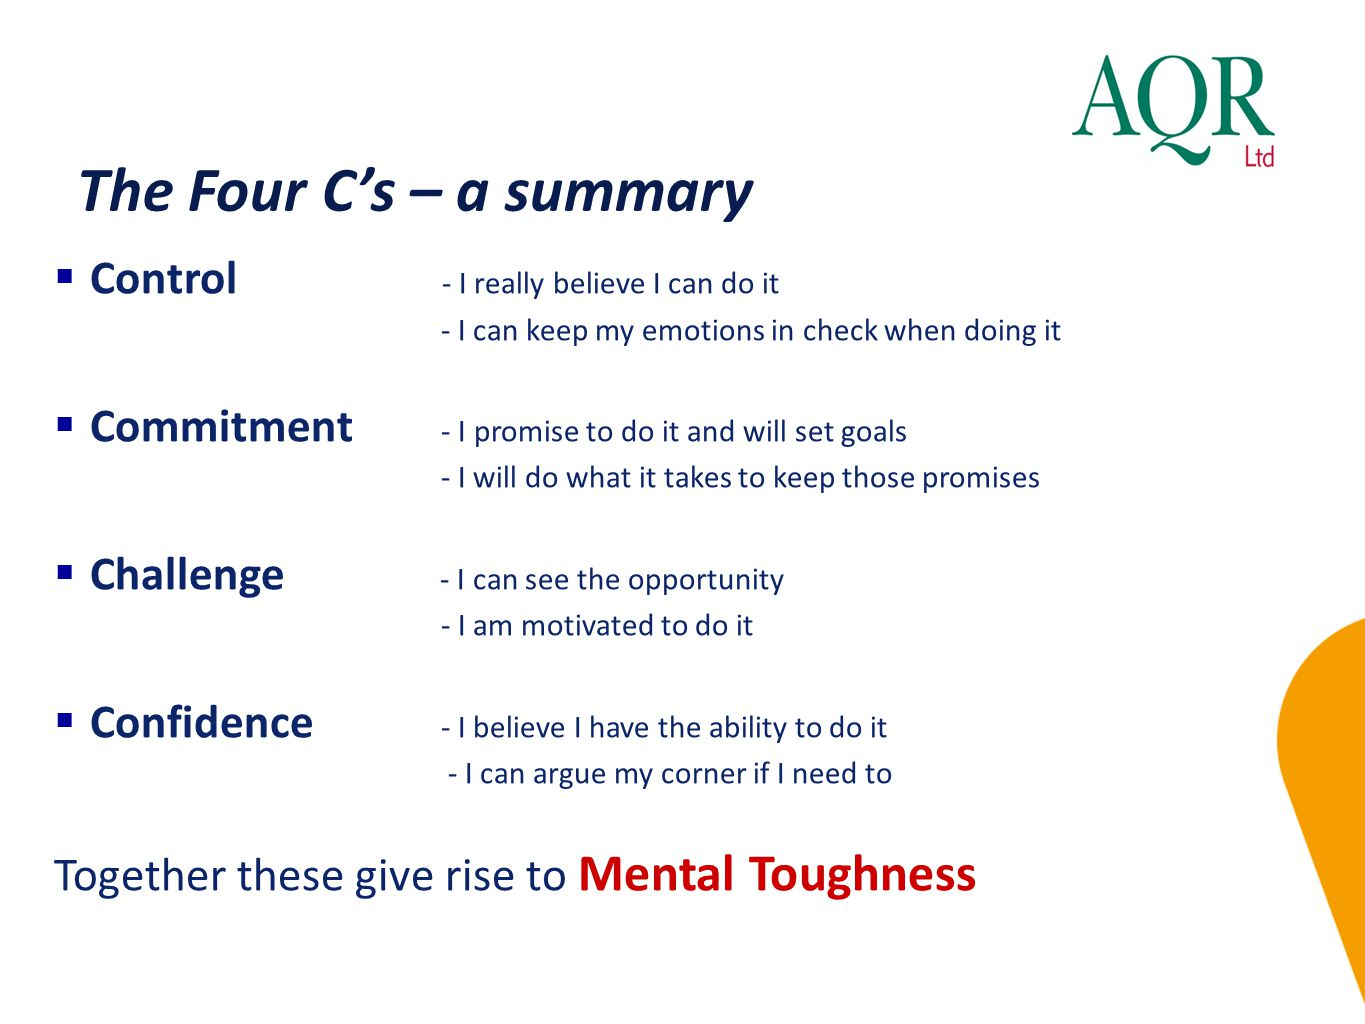 The Four C's – a summary  Control - I really believe I can do it - I can keep my emotions in check when doing it  Commitment - I promise to do it and will set goals - I will do what it takes to keep those promises  Challenge - I can see the opportunity - I am motivated to do it  Confidence - I believe I have the ability to do it - I can argue my corner if I need to Together these give rise to Mental Toughness